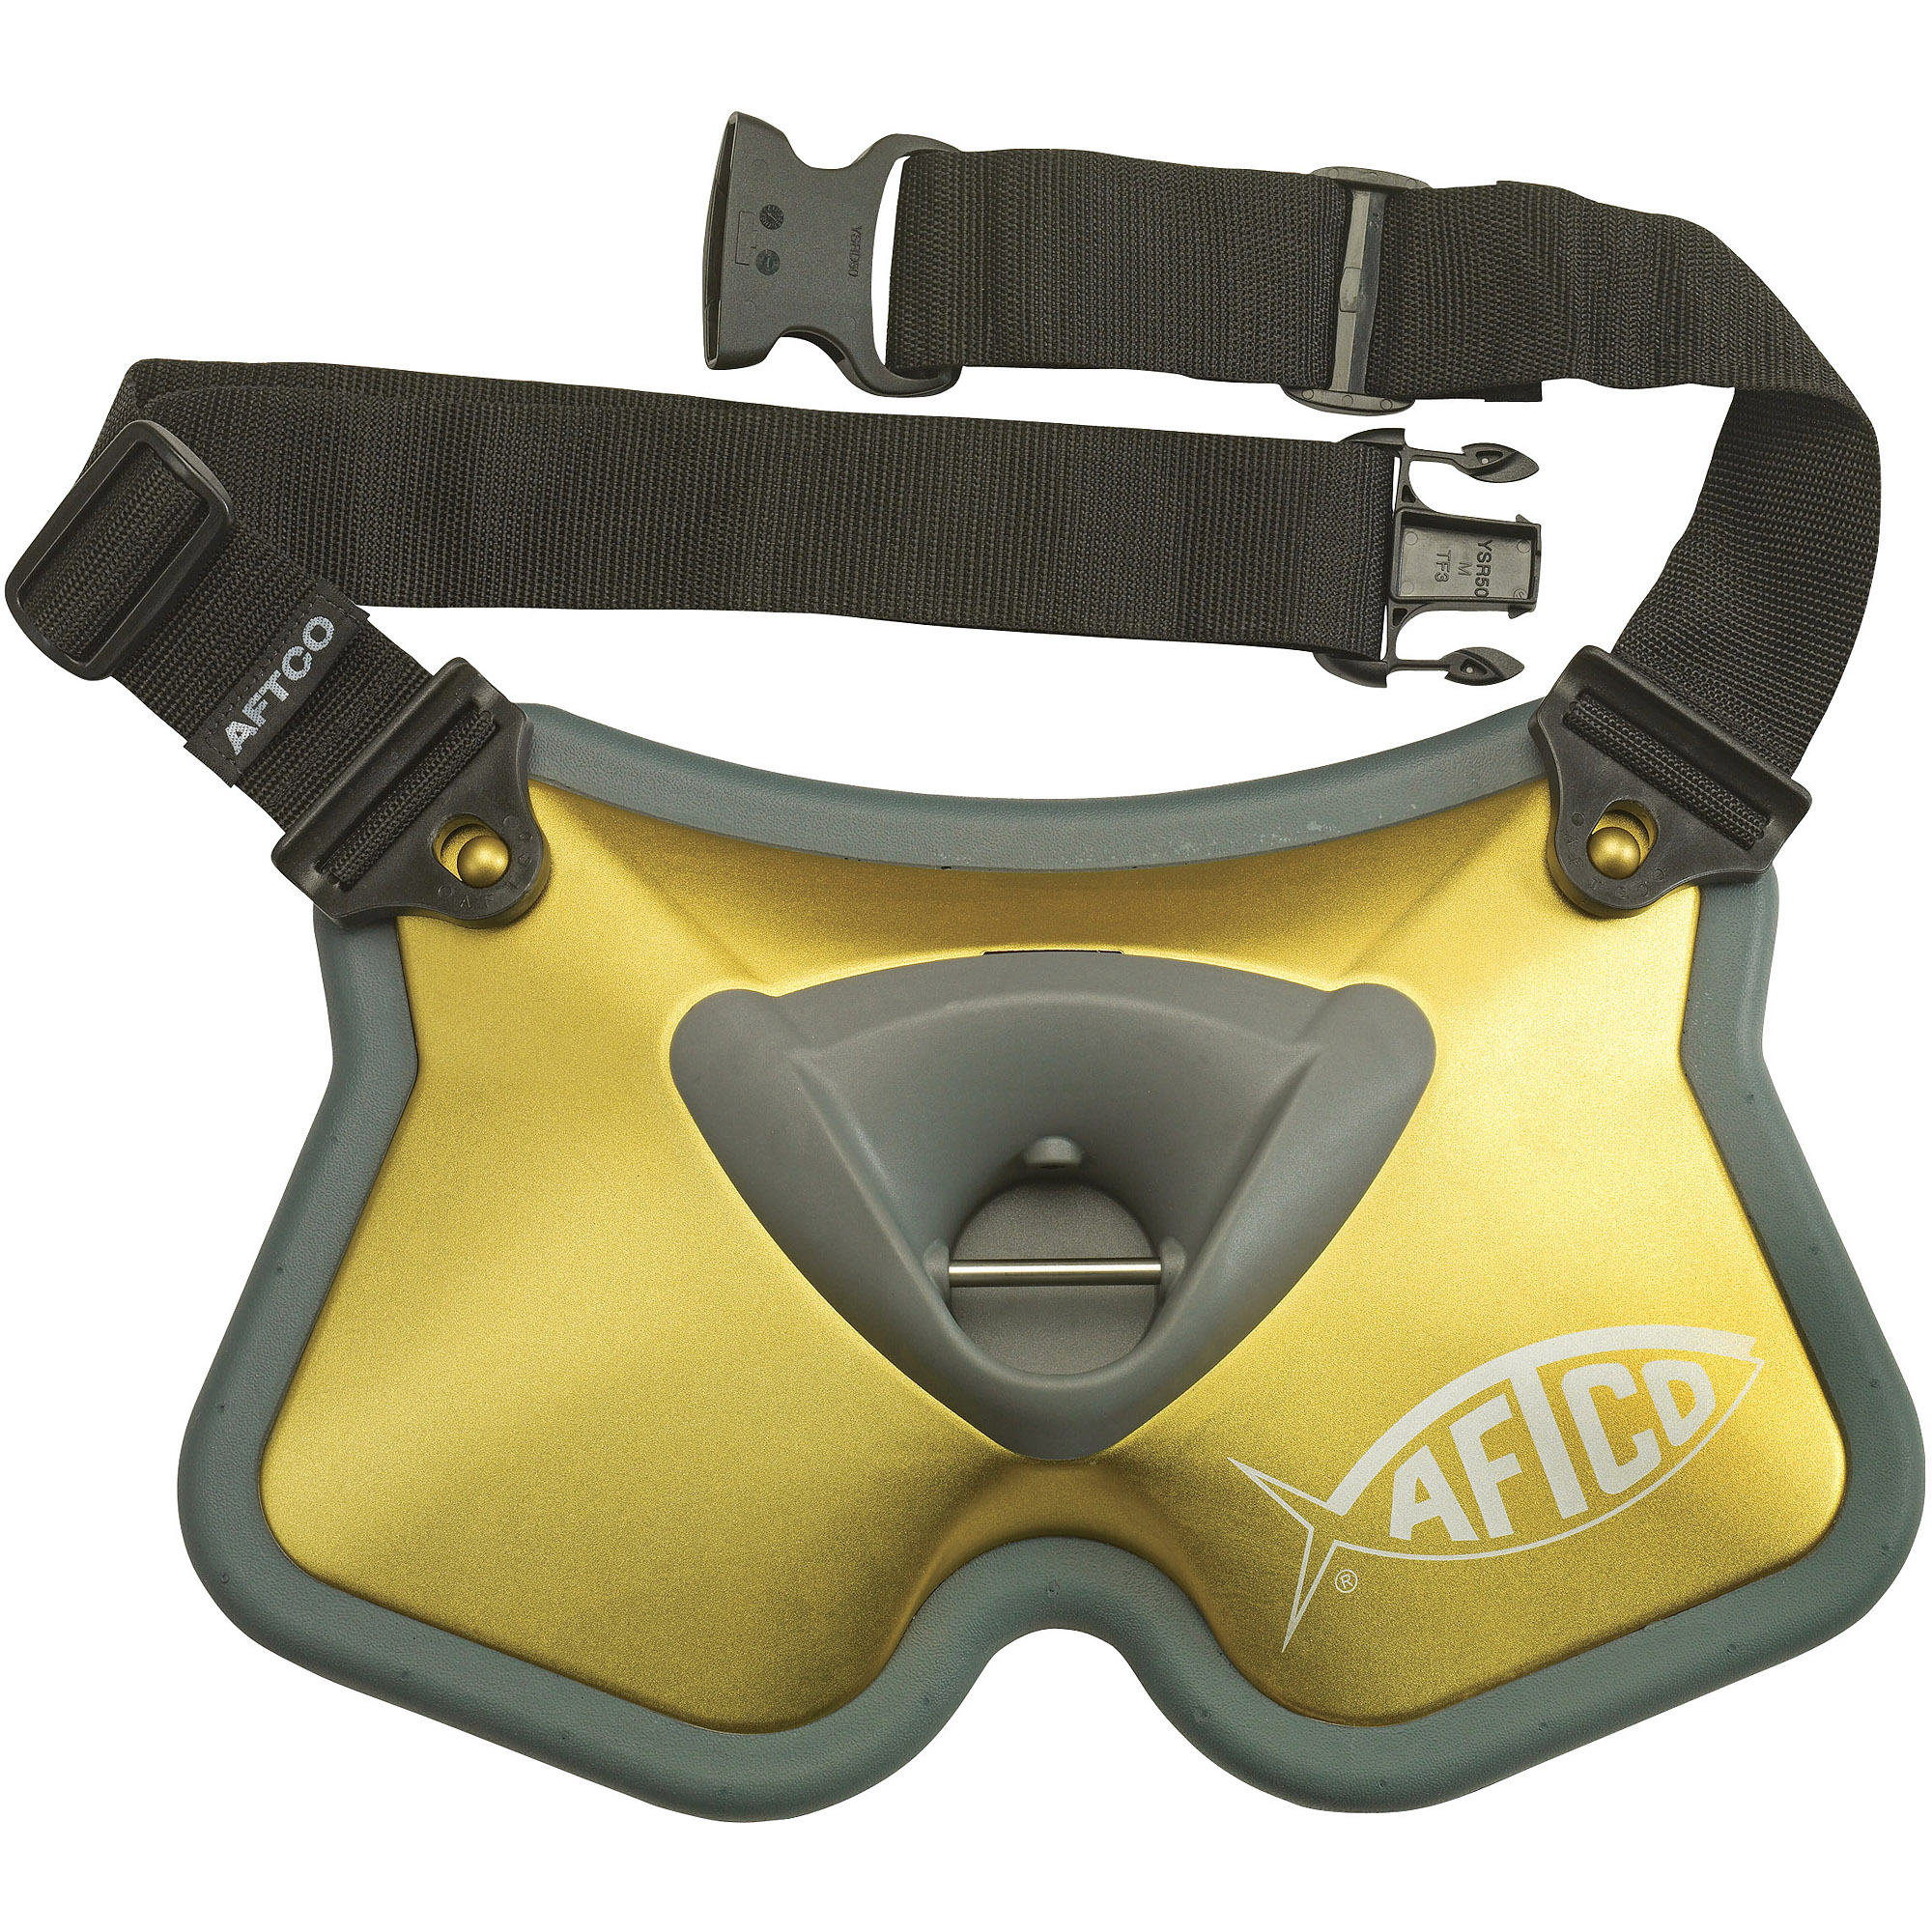 AFTCO Socorro Fighting Belt (50-80Lb), BELT2GLD by Aftco